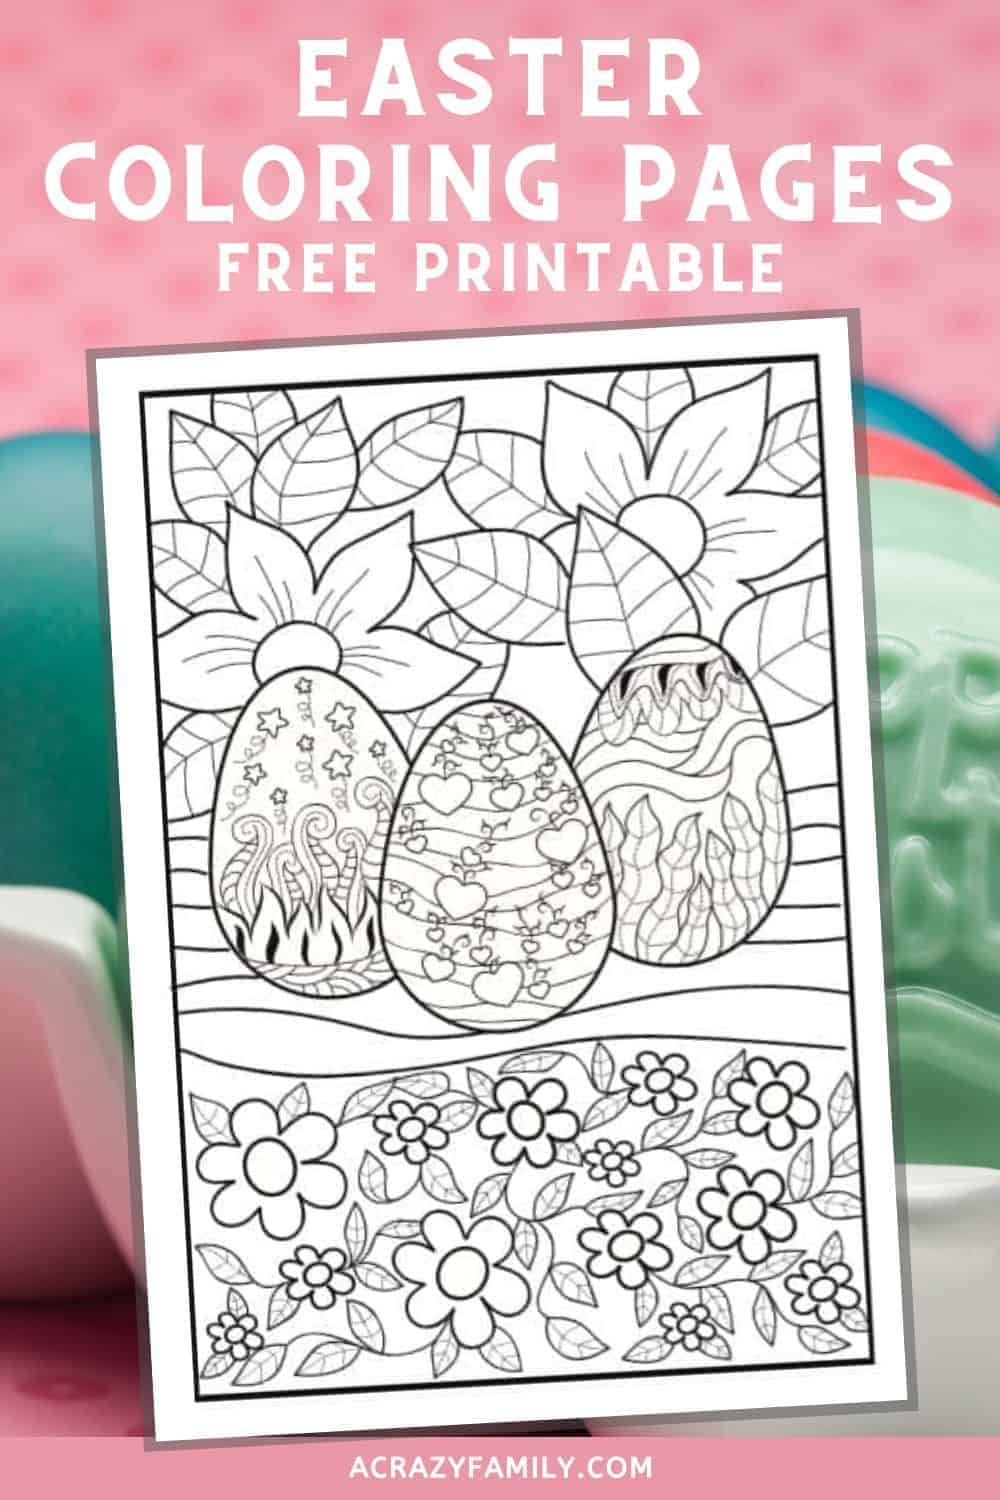 3 Free Printable Easter Coloring Pages For Kids